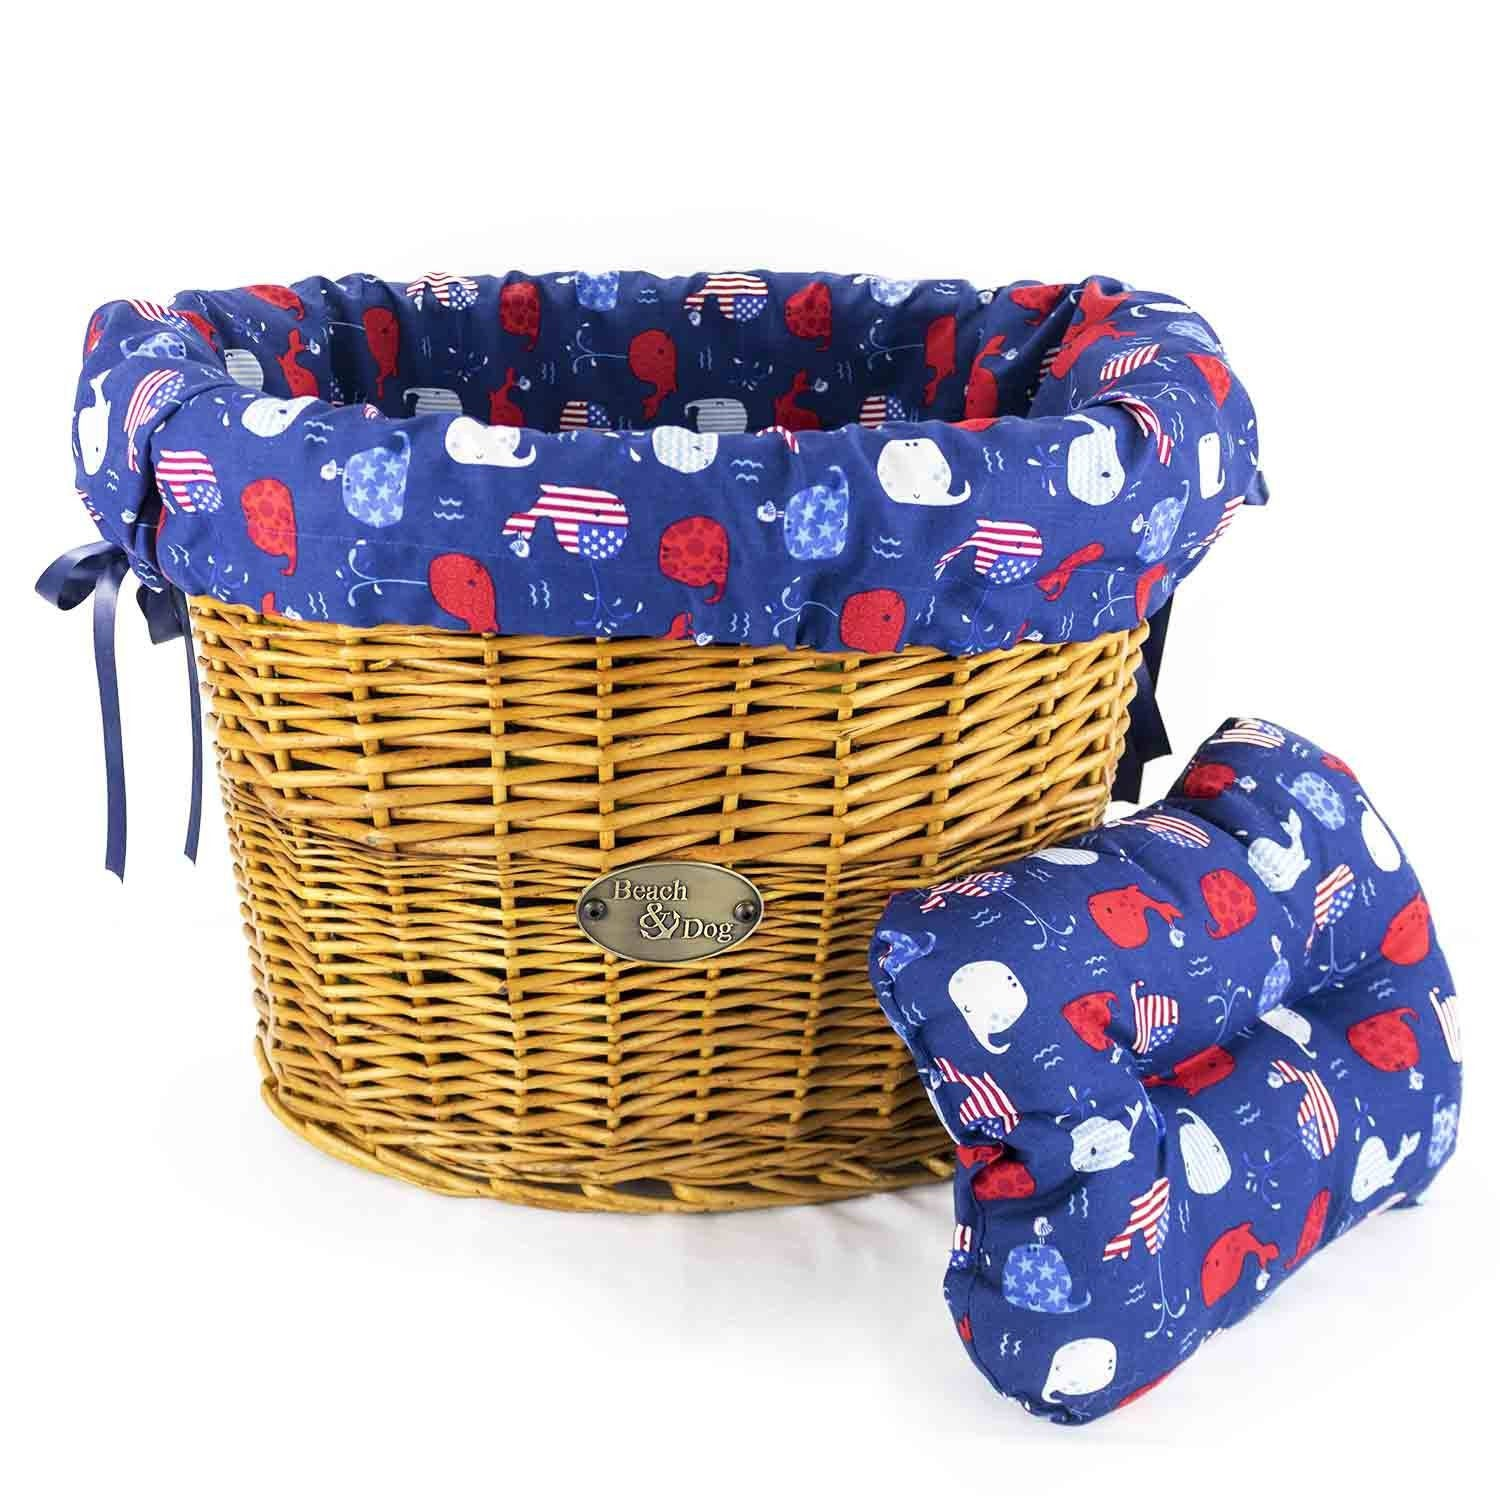 Very best Red, White, and Blue Whales Basket Liner - Beach & Dog Co.   Beach  GQ42